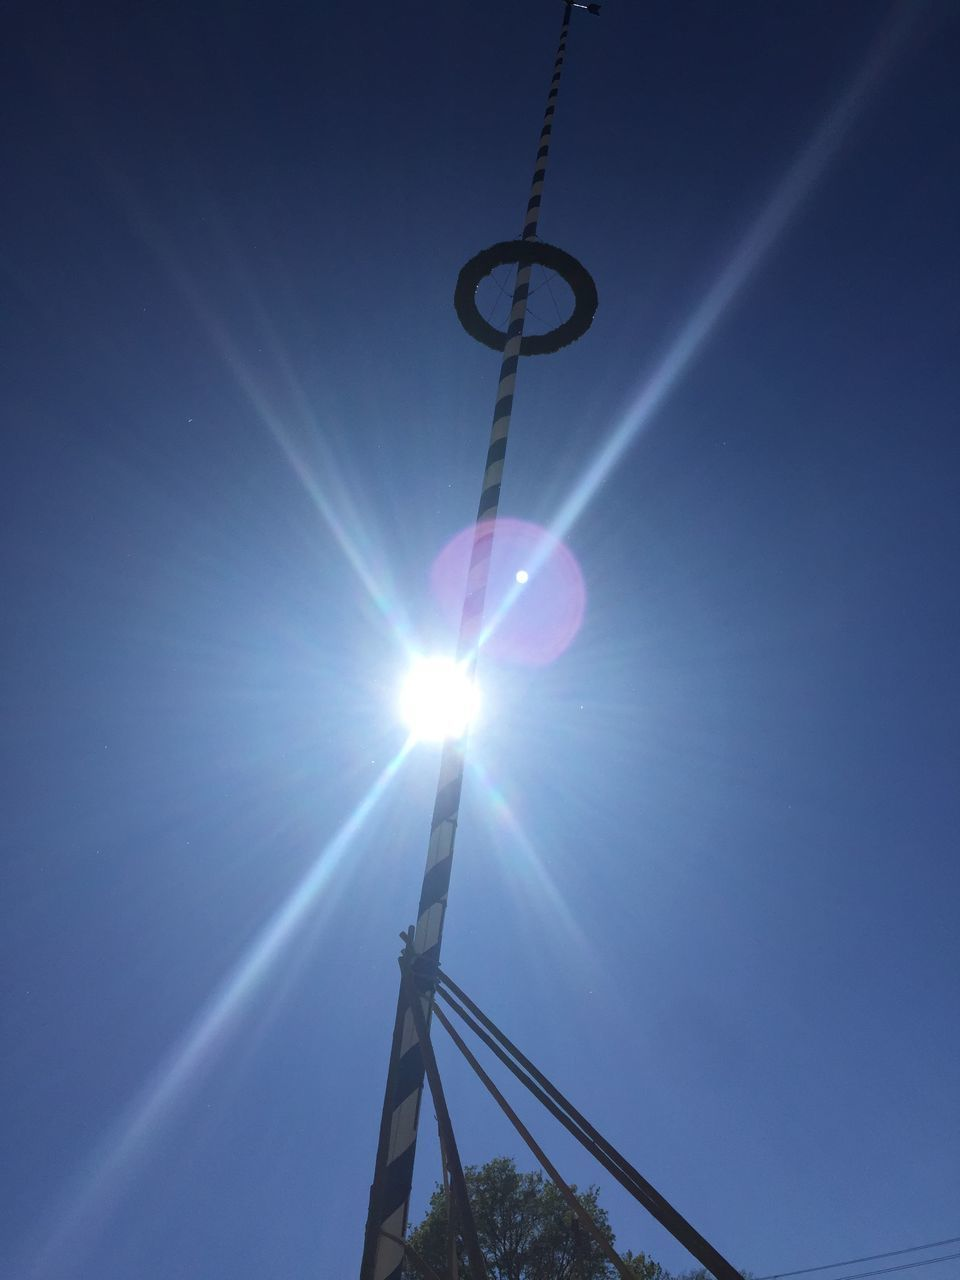 sun, lens flare, sunbeam, sunlight, no people, hanging, low angle view, outdoors, day, sky, nature